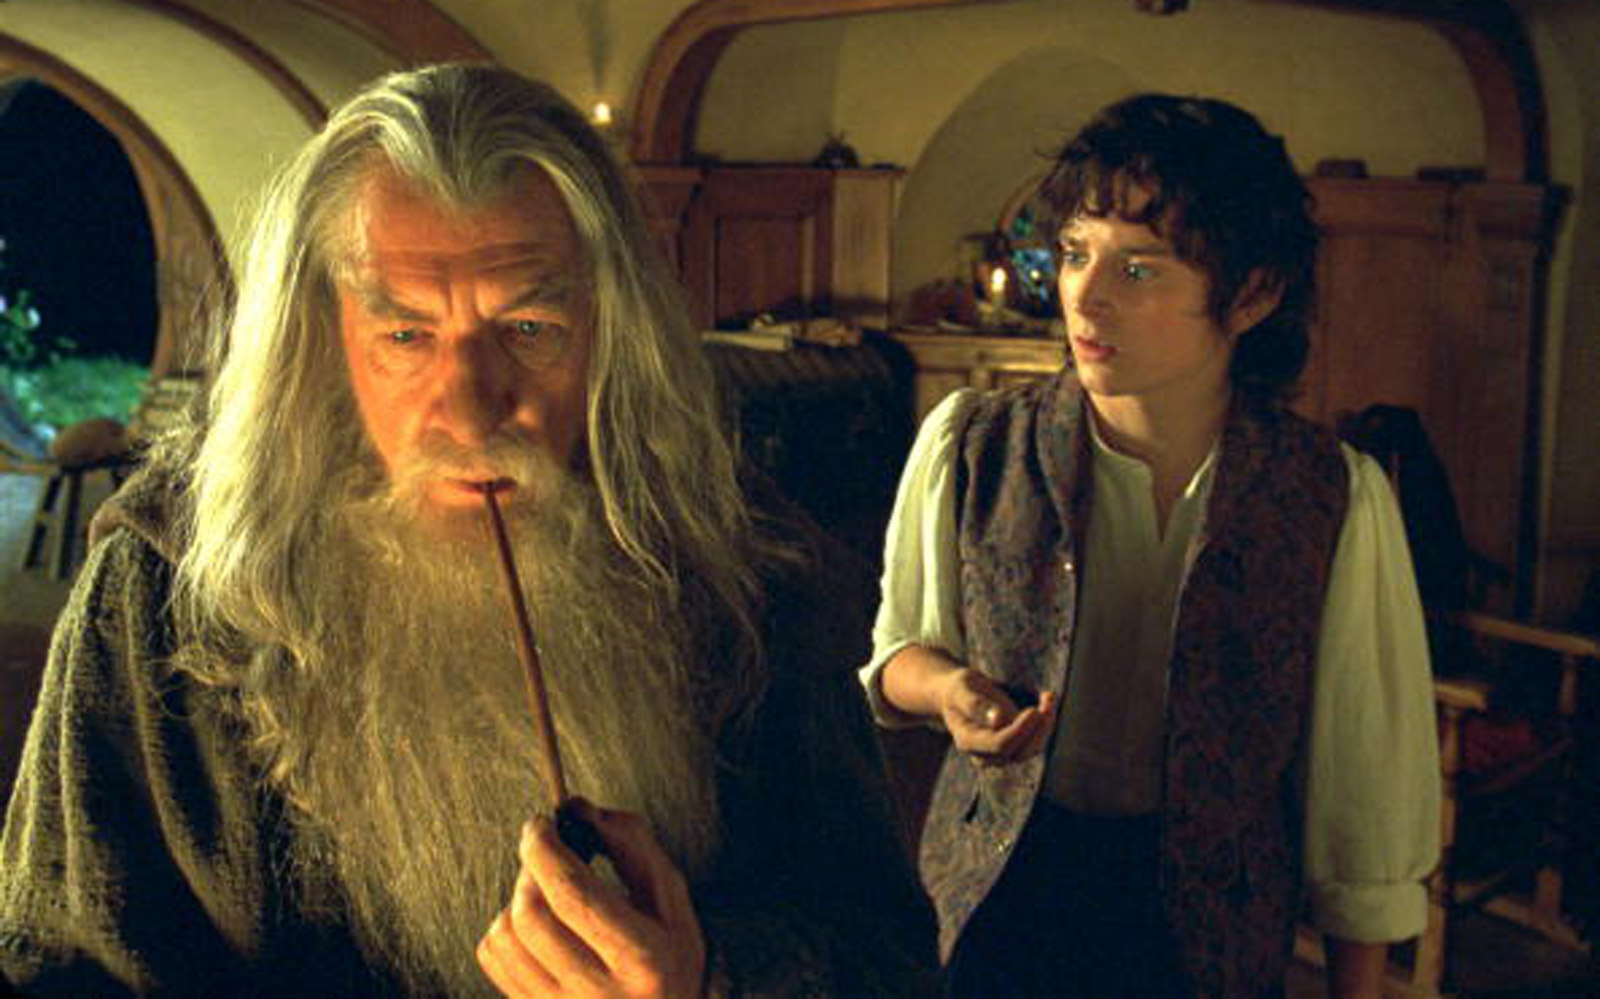 'Lord of the Rings' Is Coming to TV